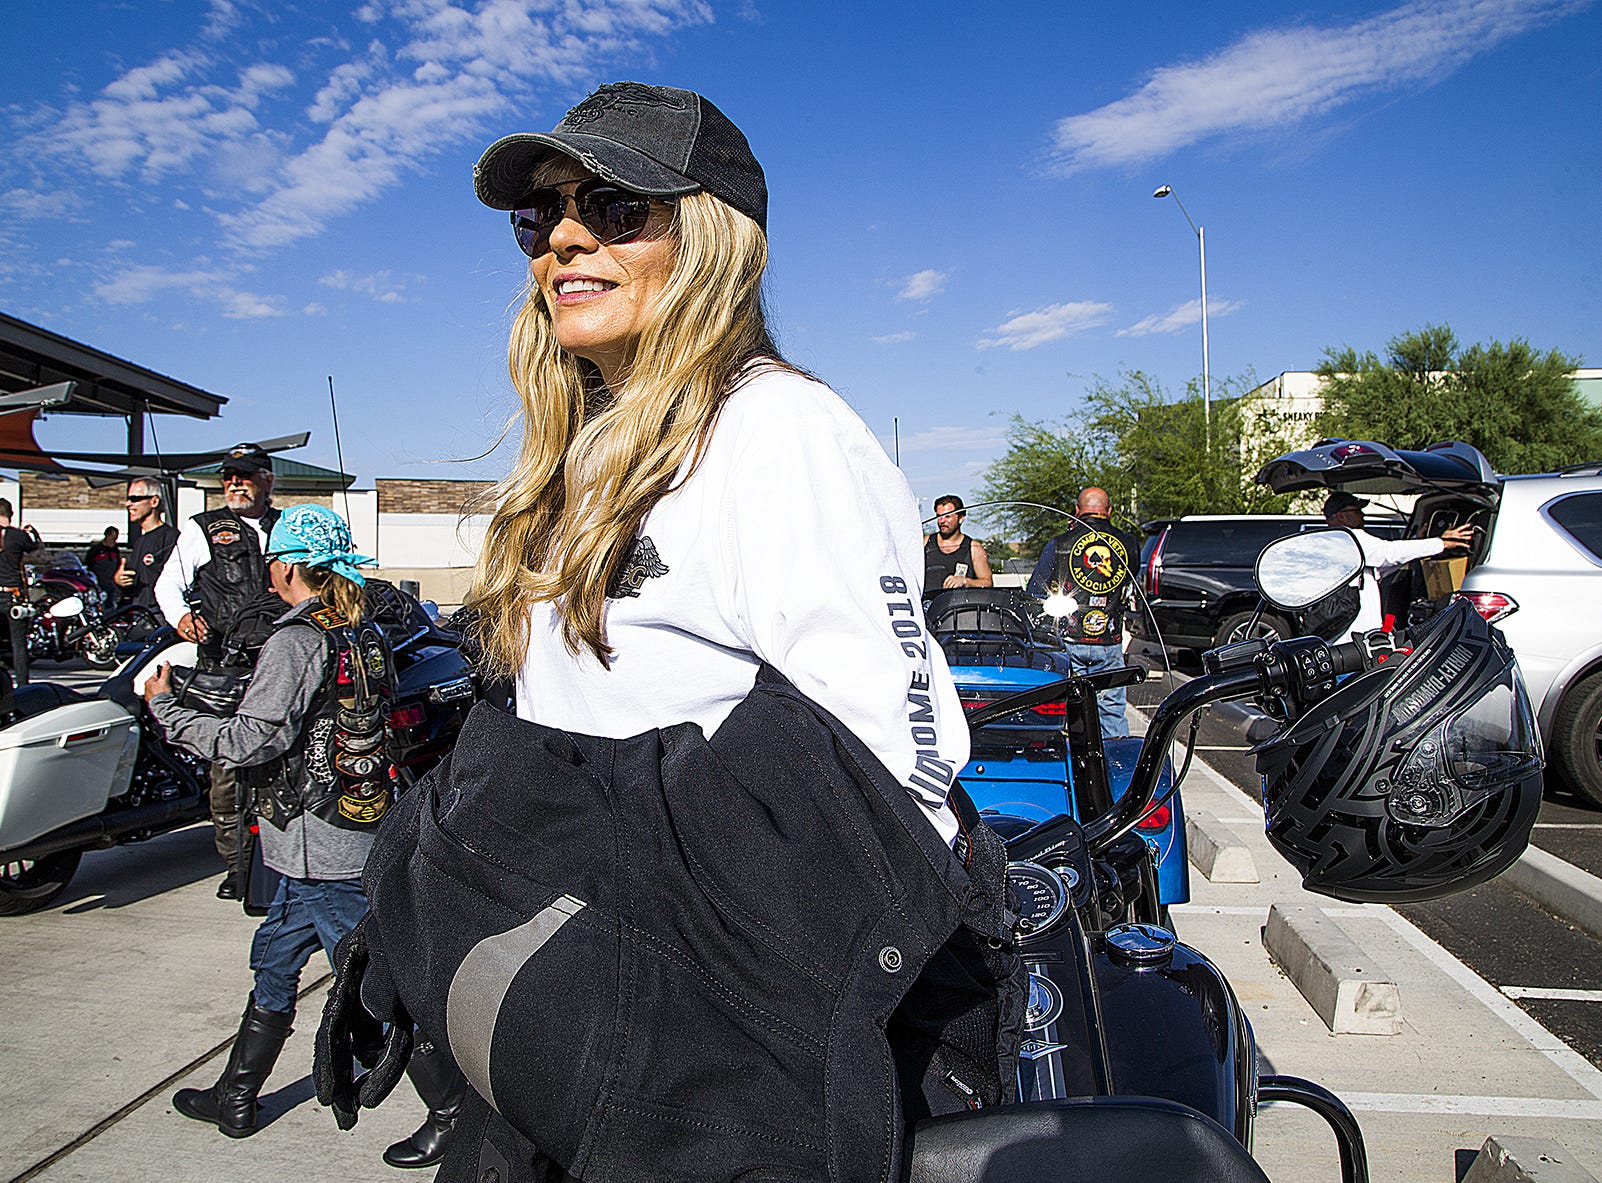 Karen Davidson, creative director of general merchandise for Harley-Davidson Motorcycles, gets ready to ride her 2019 Road King Special outside the Harley-Davidson dealership in Scottsdale, Arizona, Aug. 22.  Davidson is the great-granddaughter of Harley-Davidson co-founder William A. Davidson.